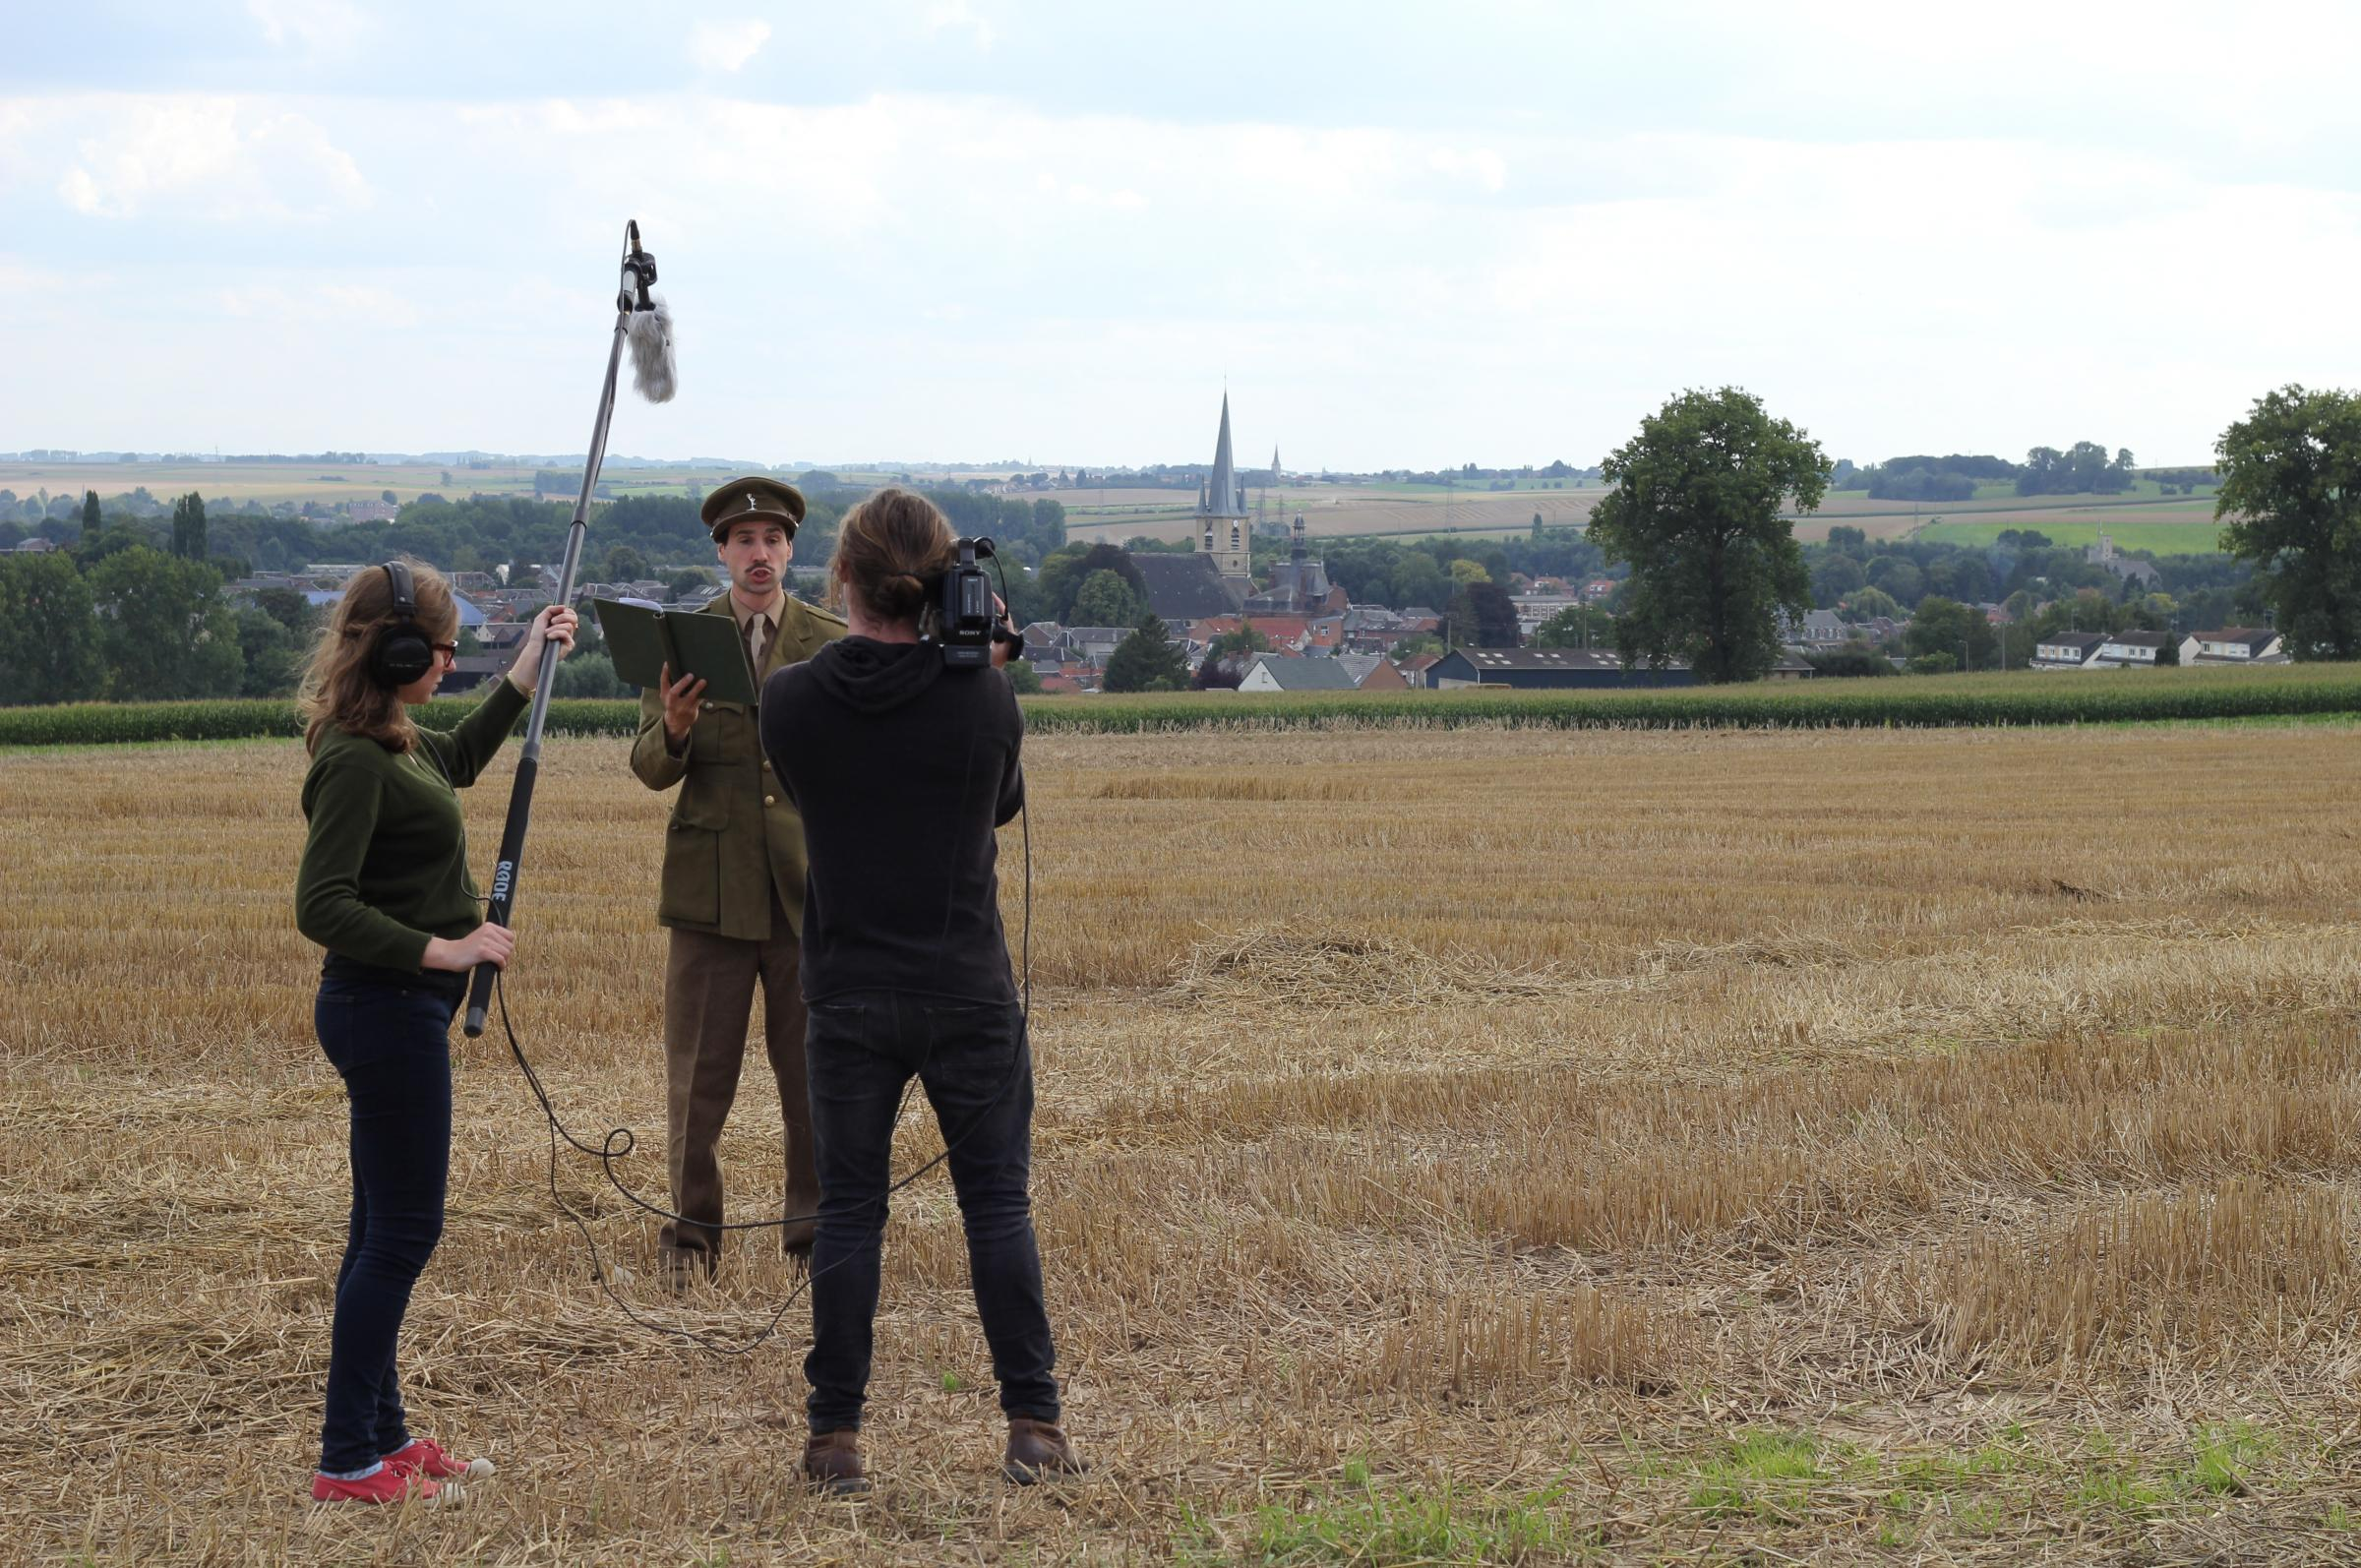 Malmesbury filmmakers to premiere First World War documentary in town hall